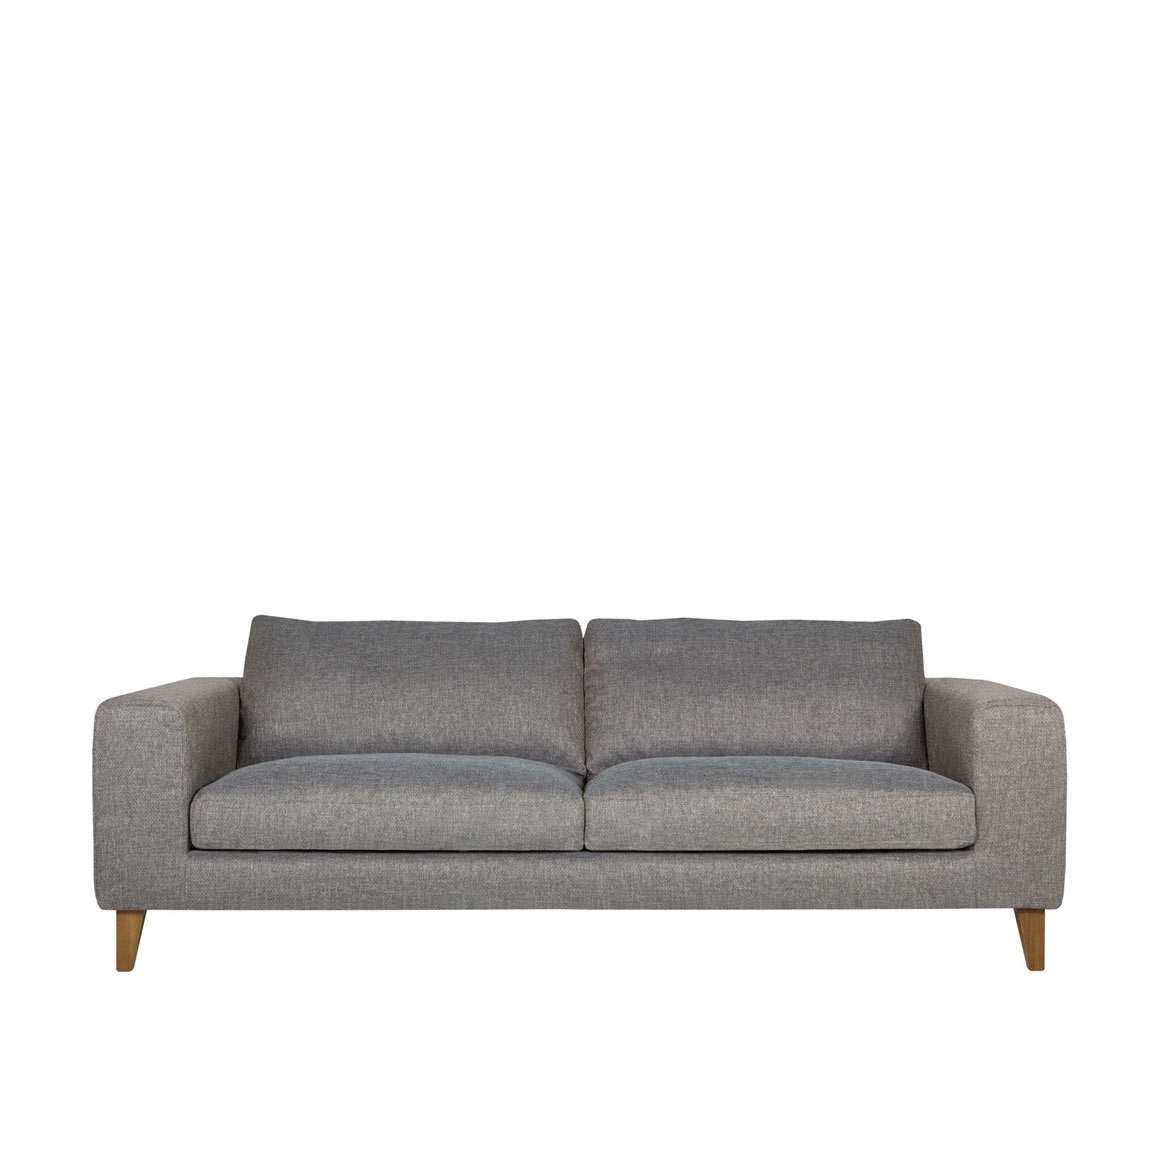 Sunday 2 seater sofa